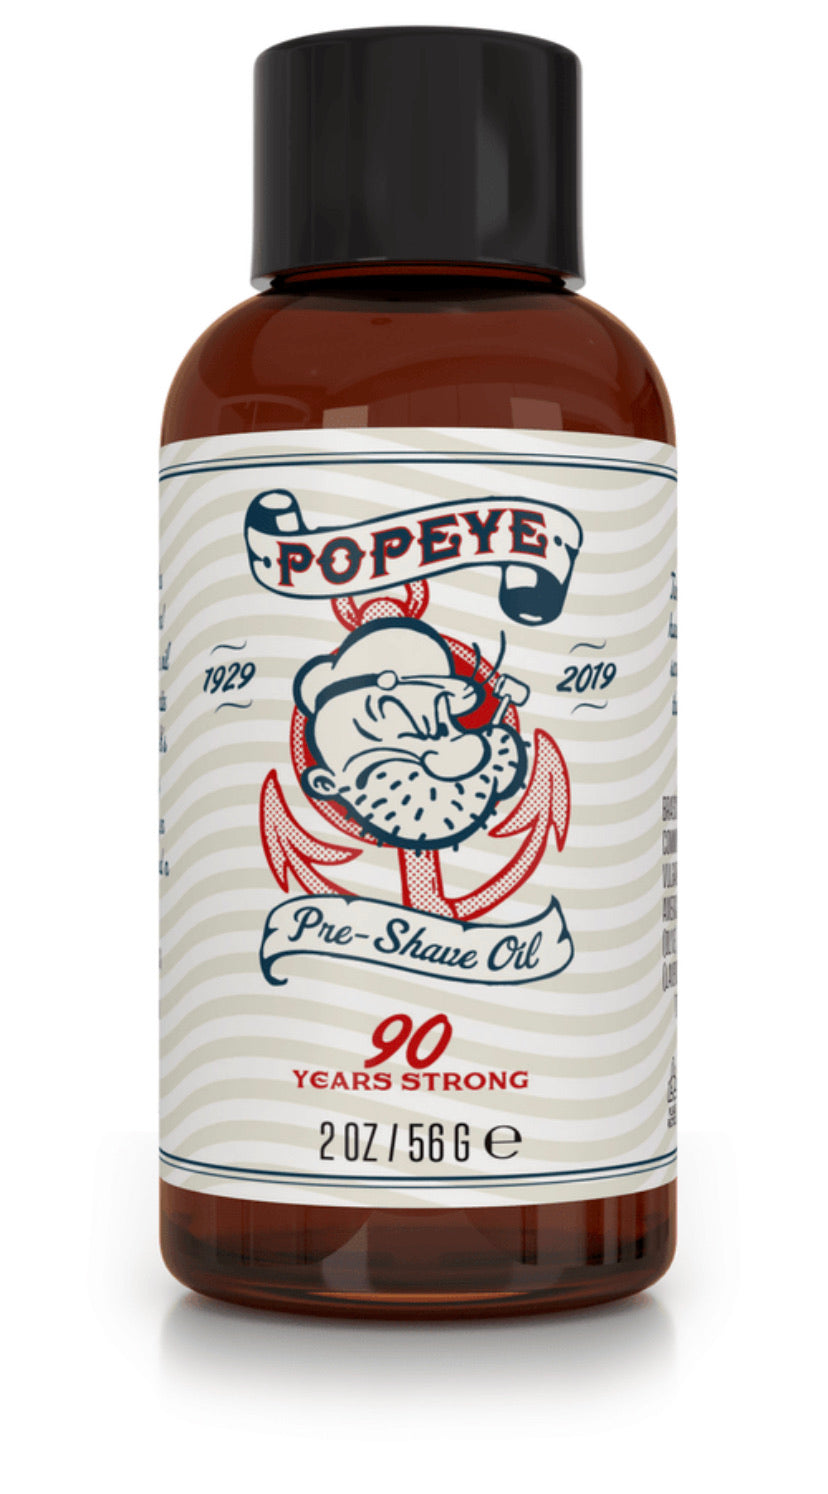 Popeye Pre-shave Oil - Masen Products